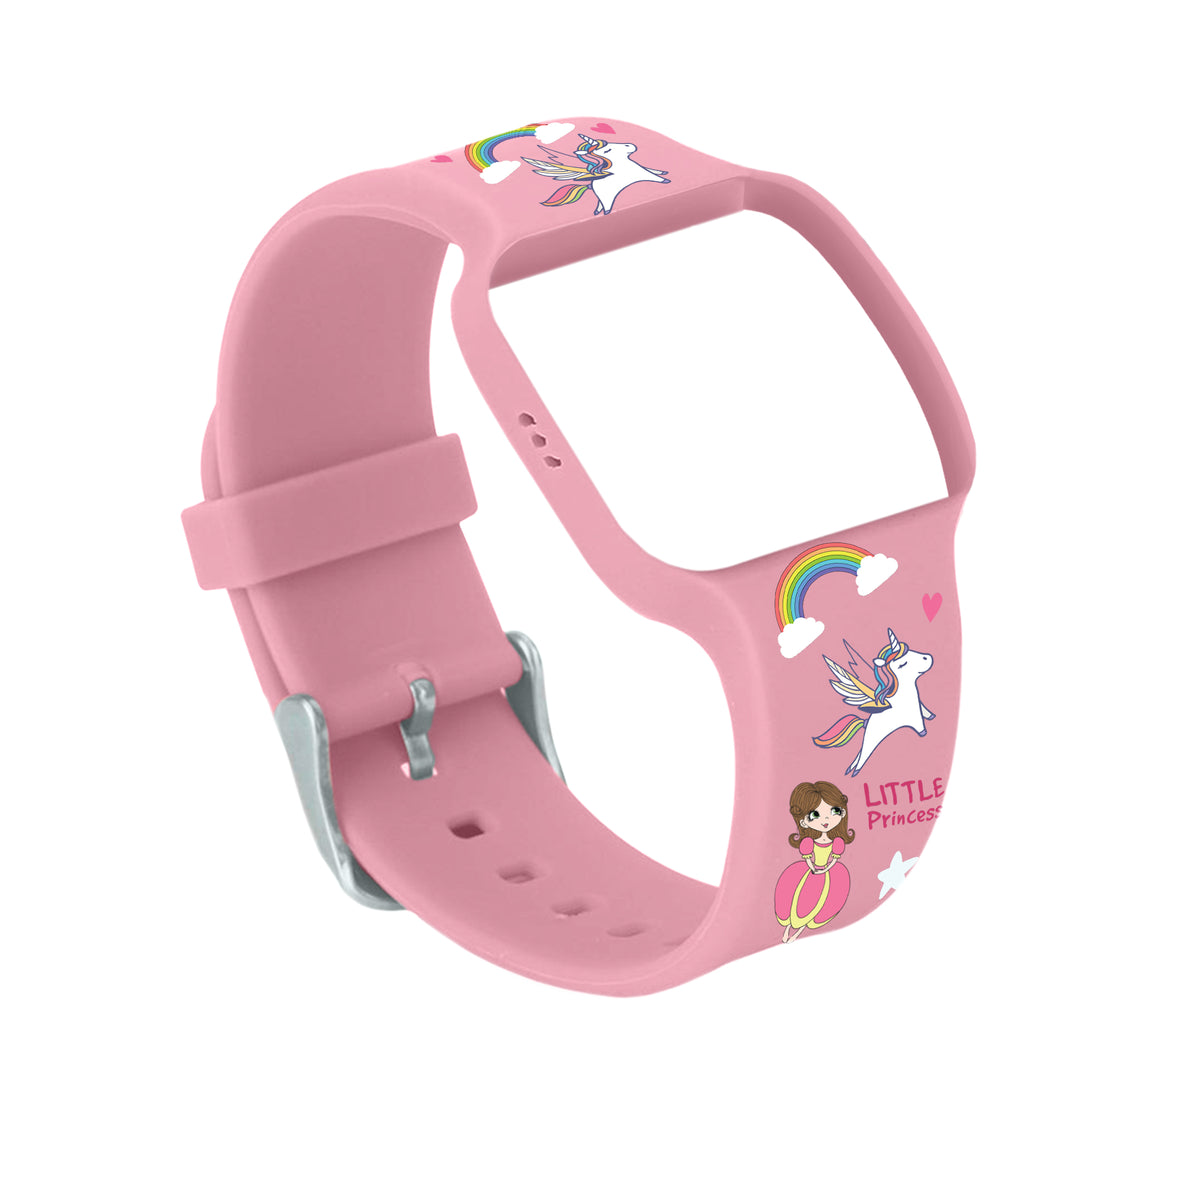 Princess Pink Watch Band for Athena Futures Potty Training Watch - Athena Futures Inc.